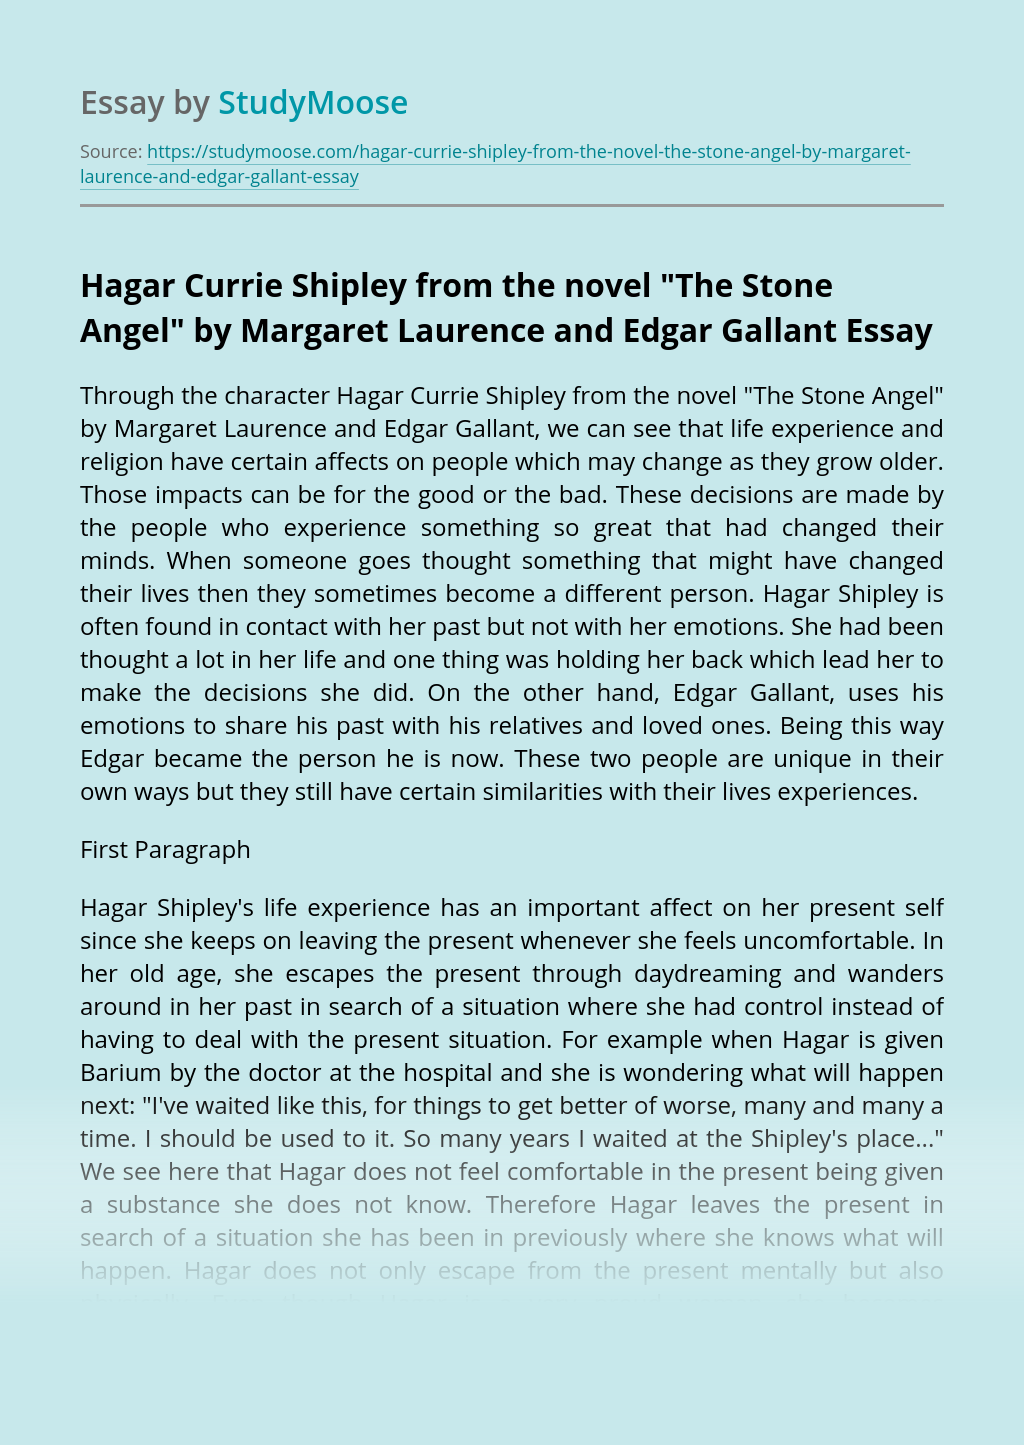 Religious Beliefs in A Novel The Stone Angel